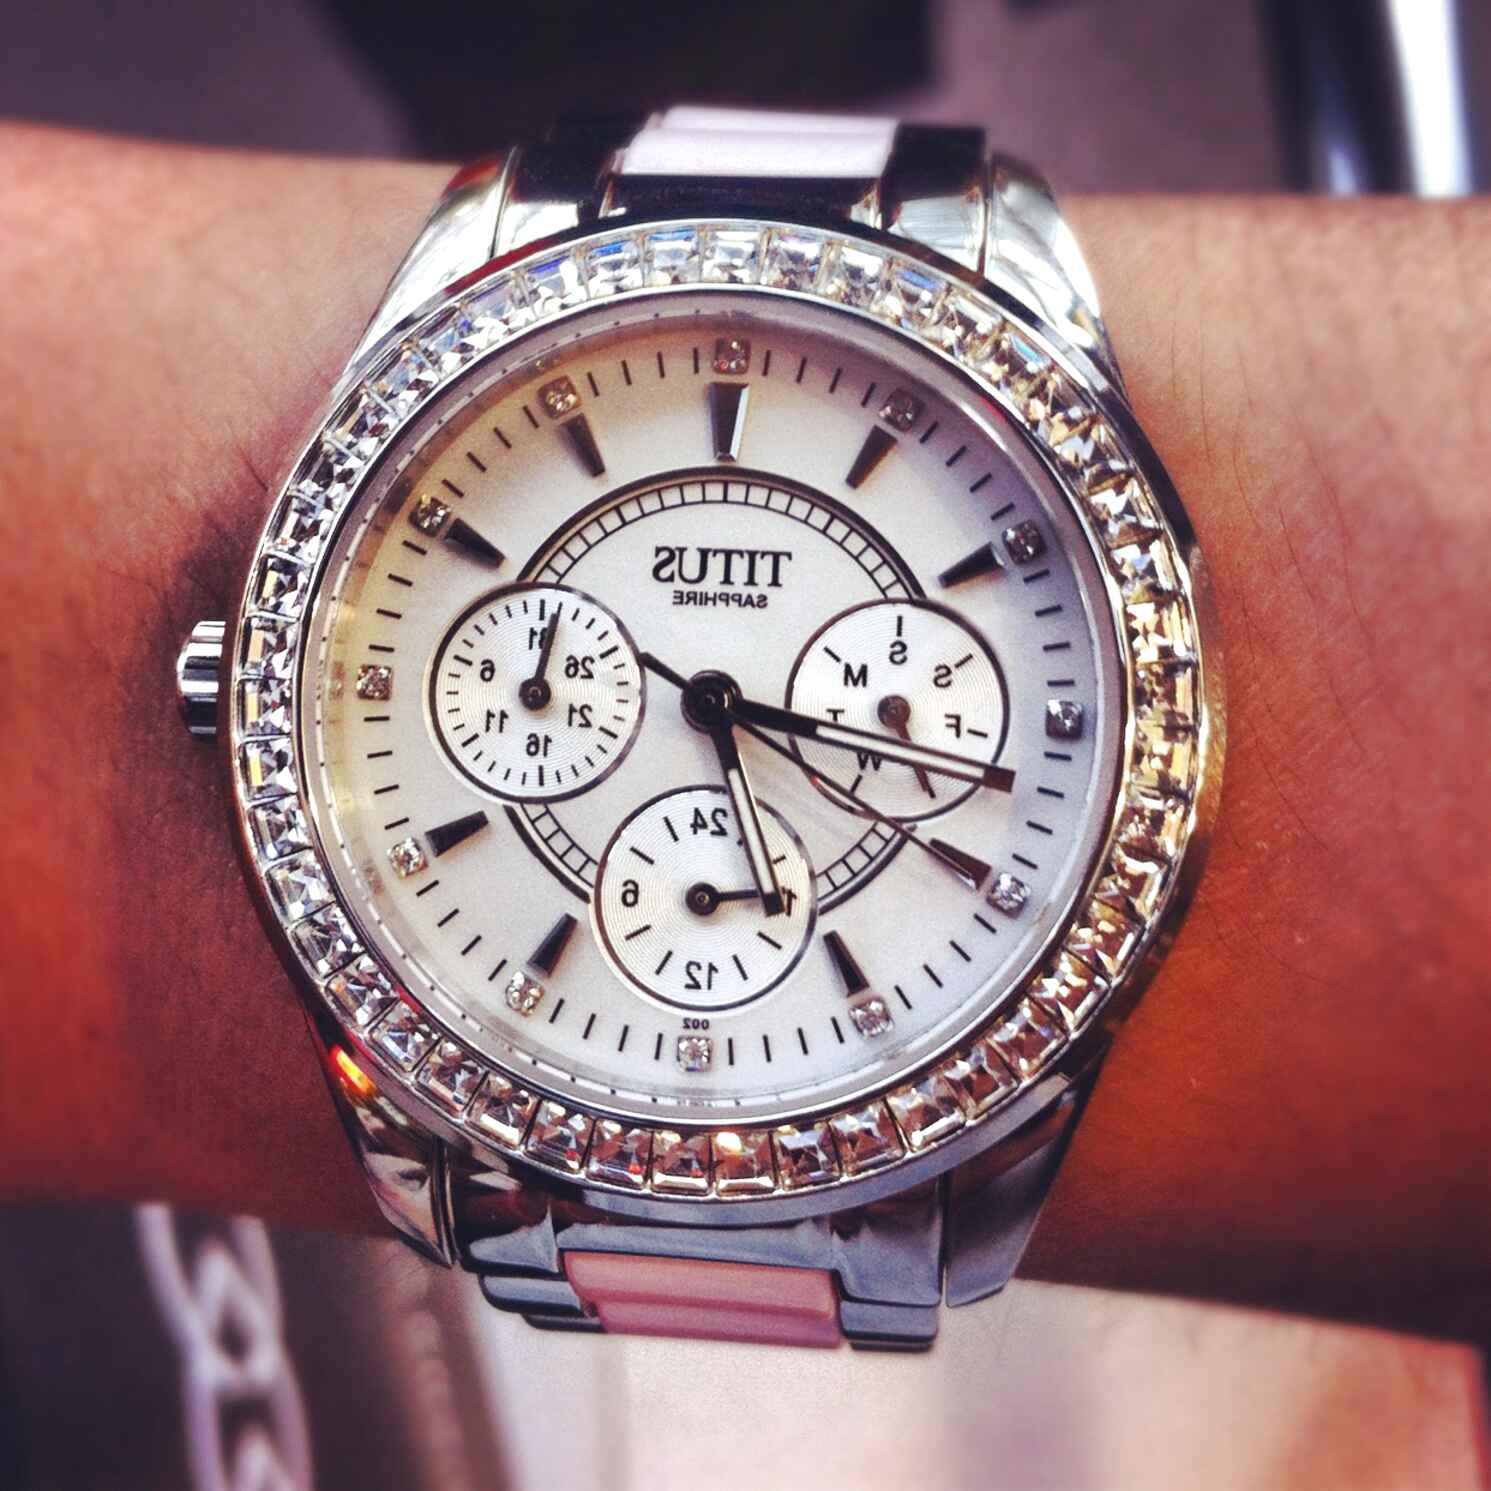 Solvil Titus Watch for sale in UK | View 17 bargains